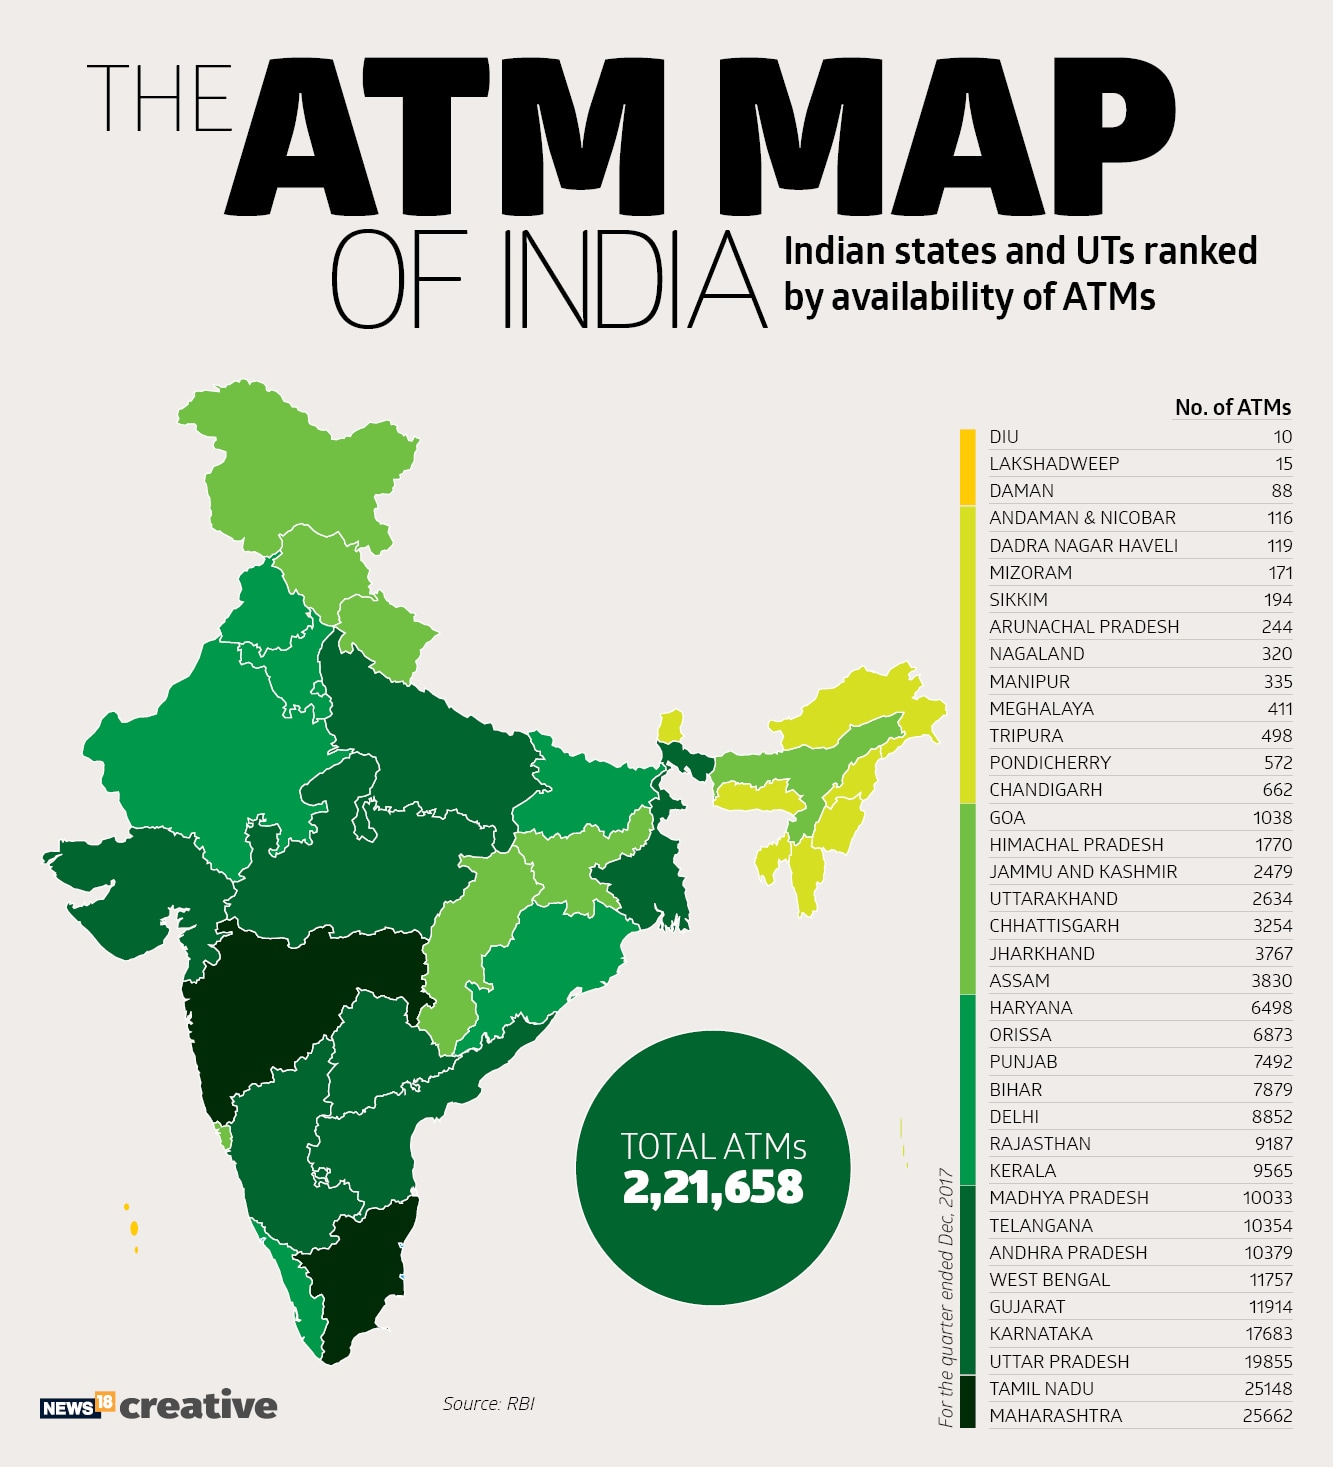 Cash position improving, 80% ATMs said to be operating